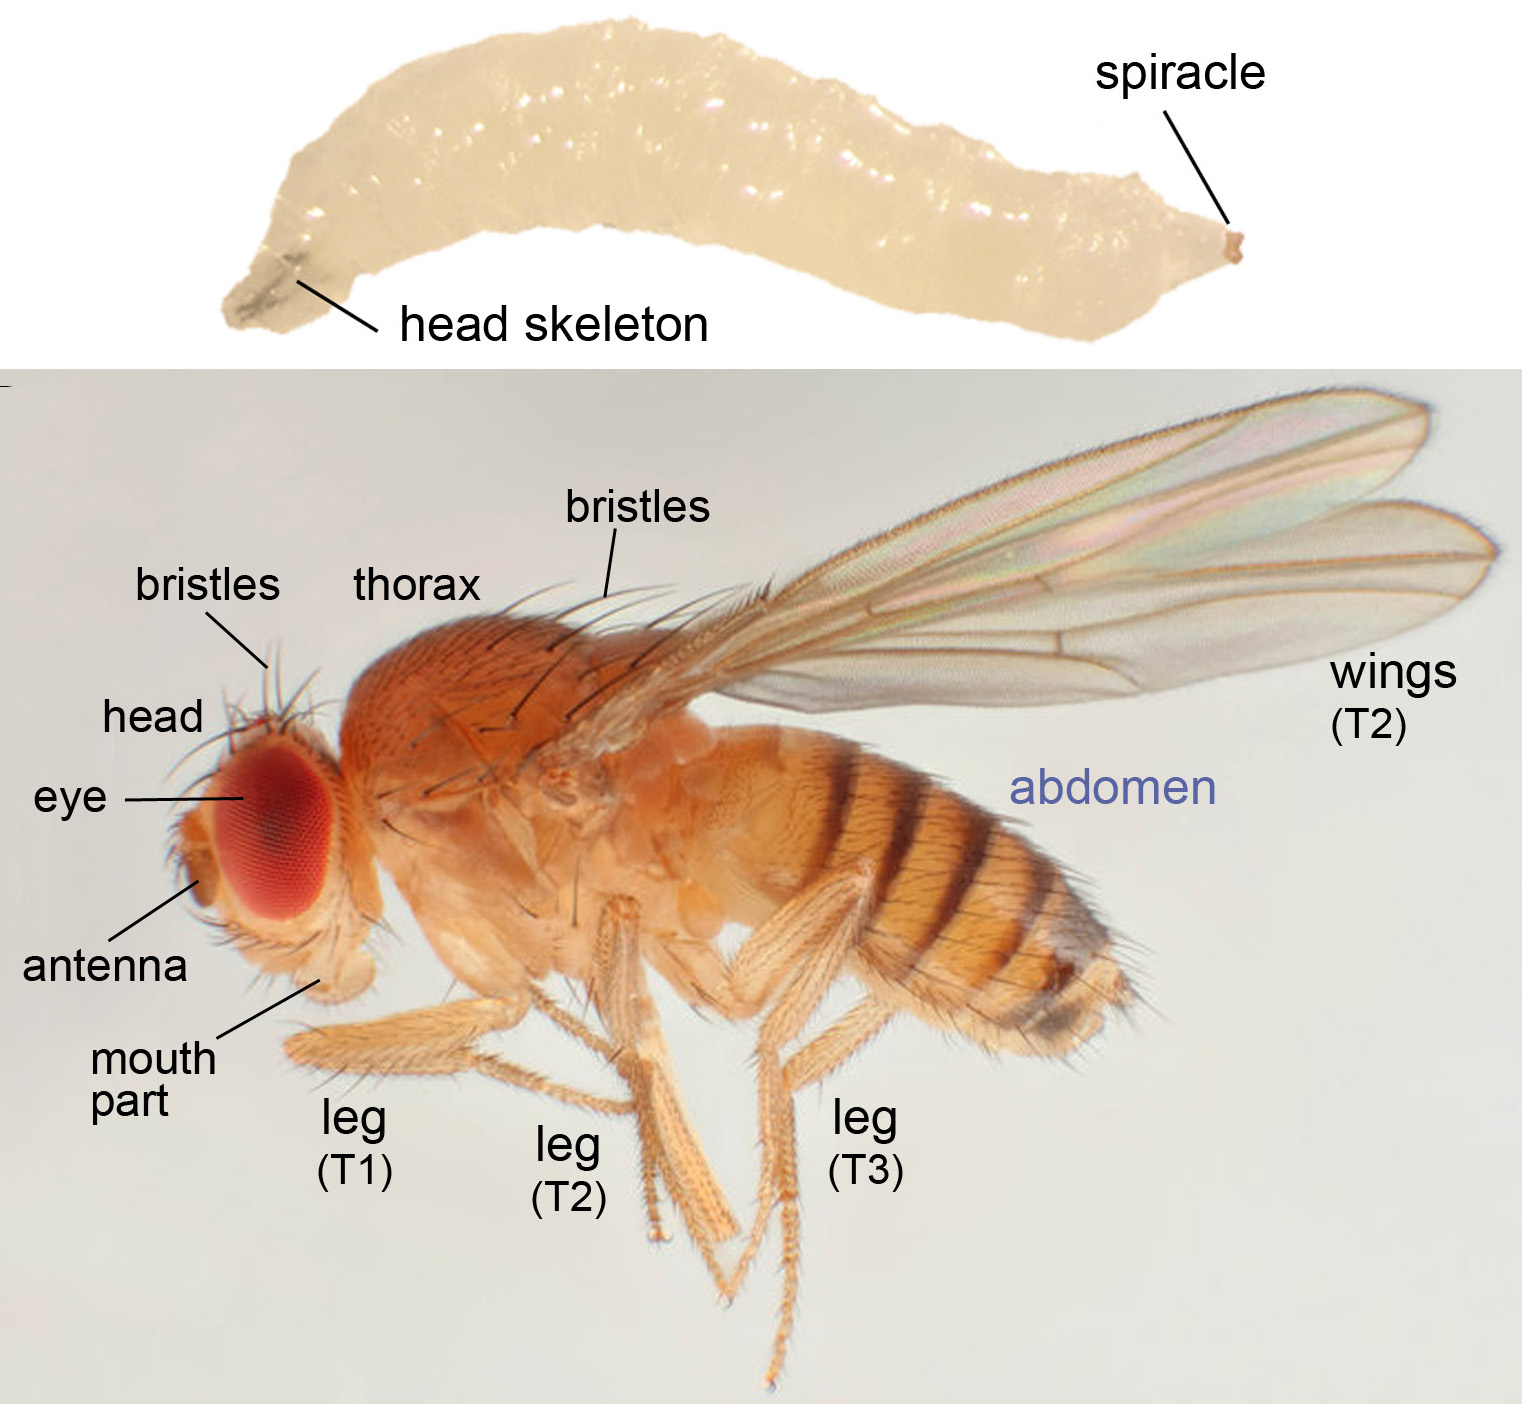 hight resolution of image sources sekelsky lab discover life by malcolm storey